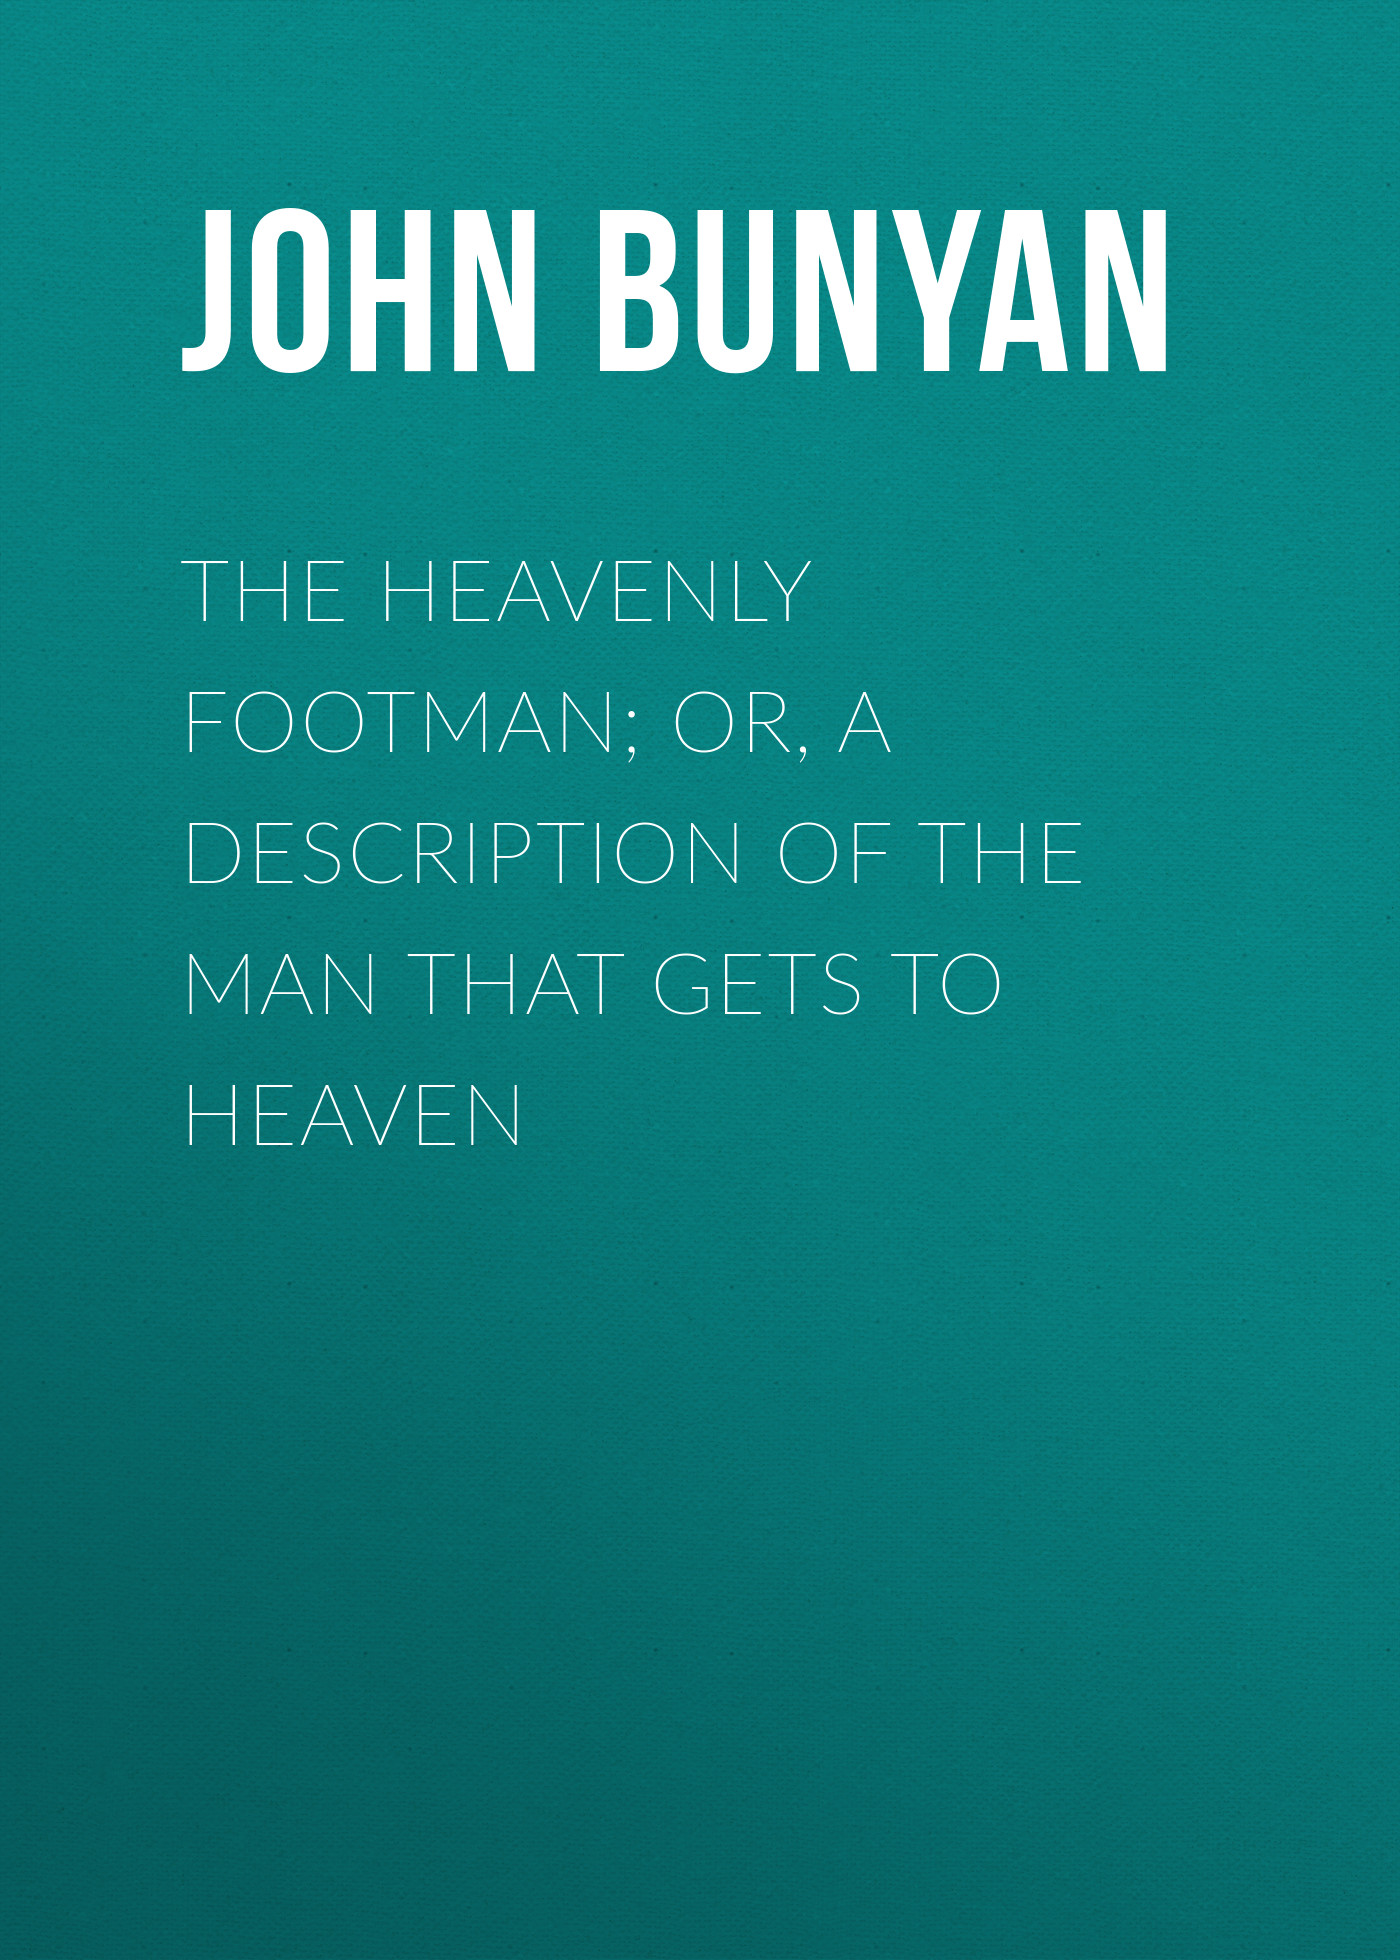 лучшая цена John Bunyan The Heavenly Footman; Or, A Description of the Man That Gets to Heaven